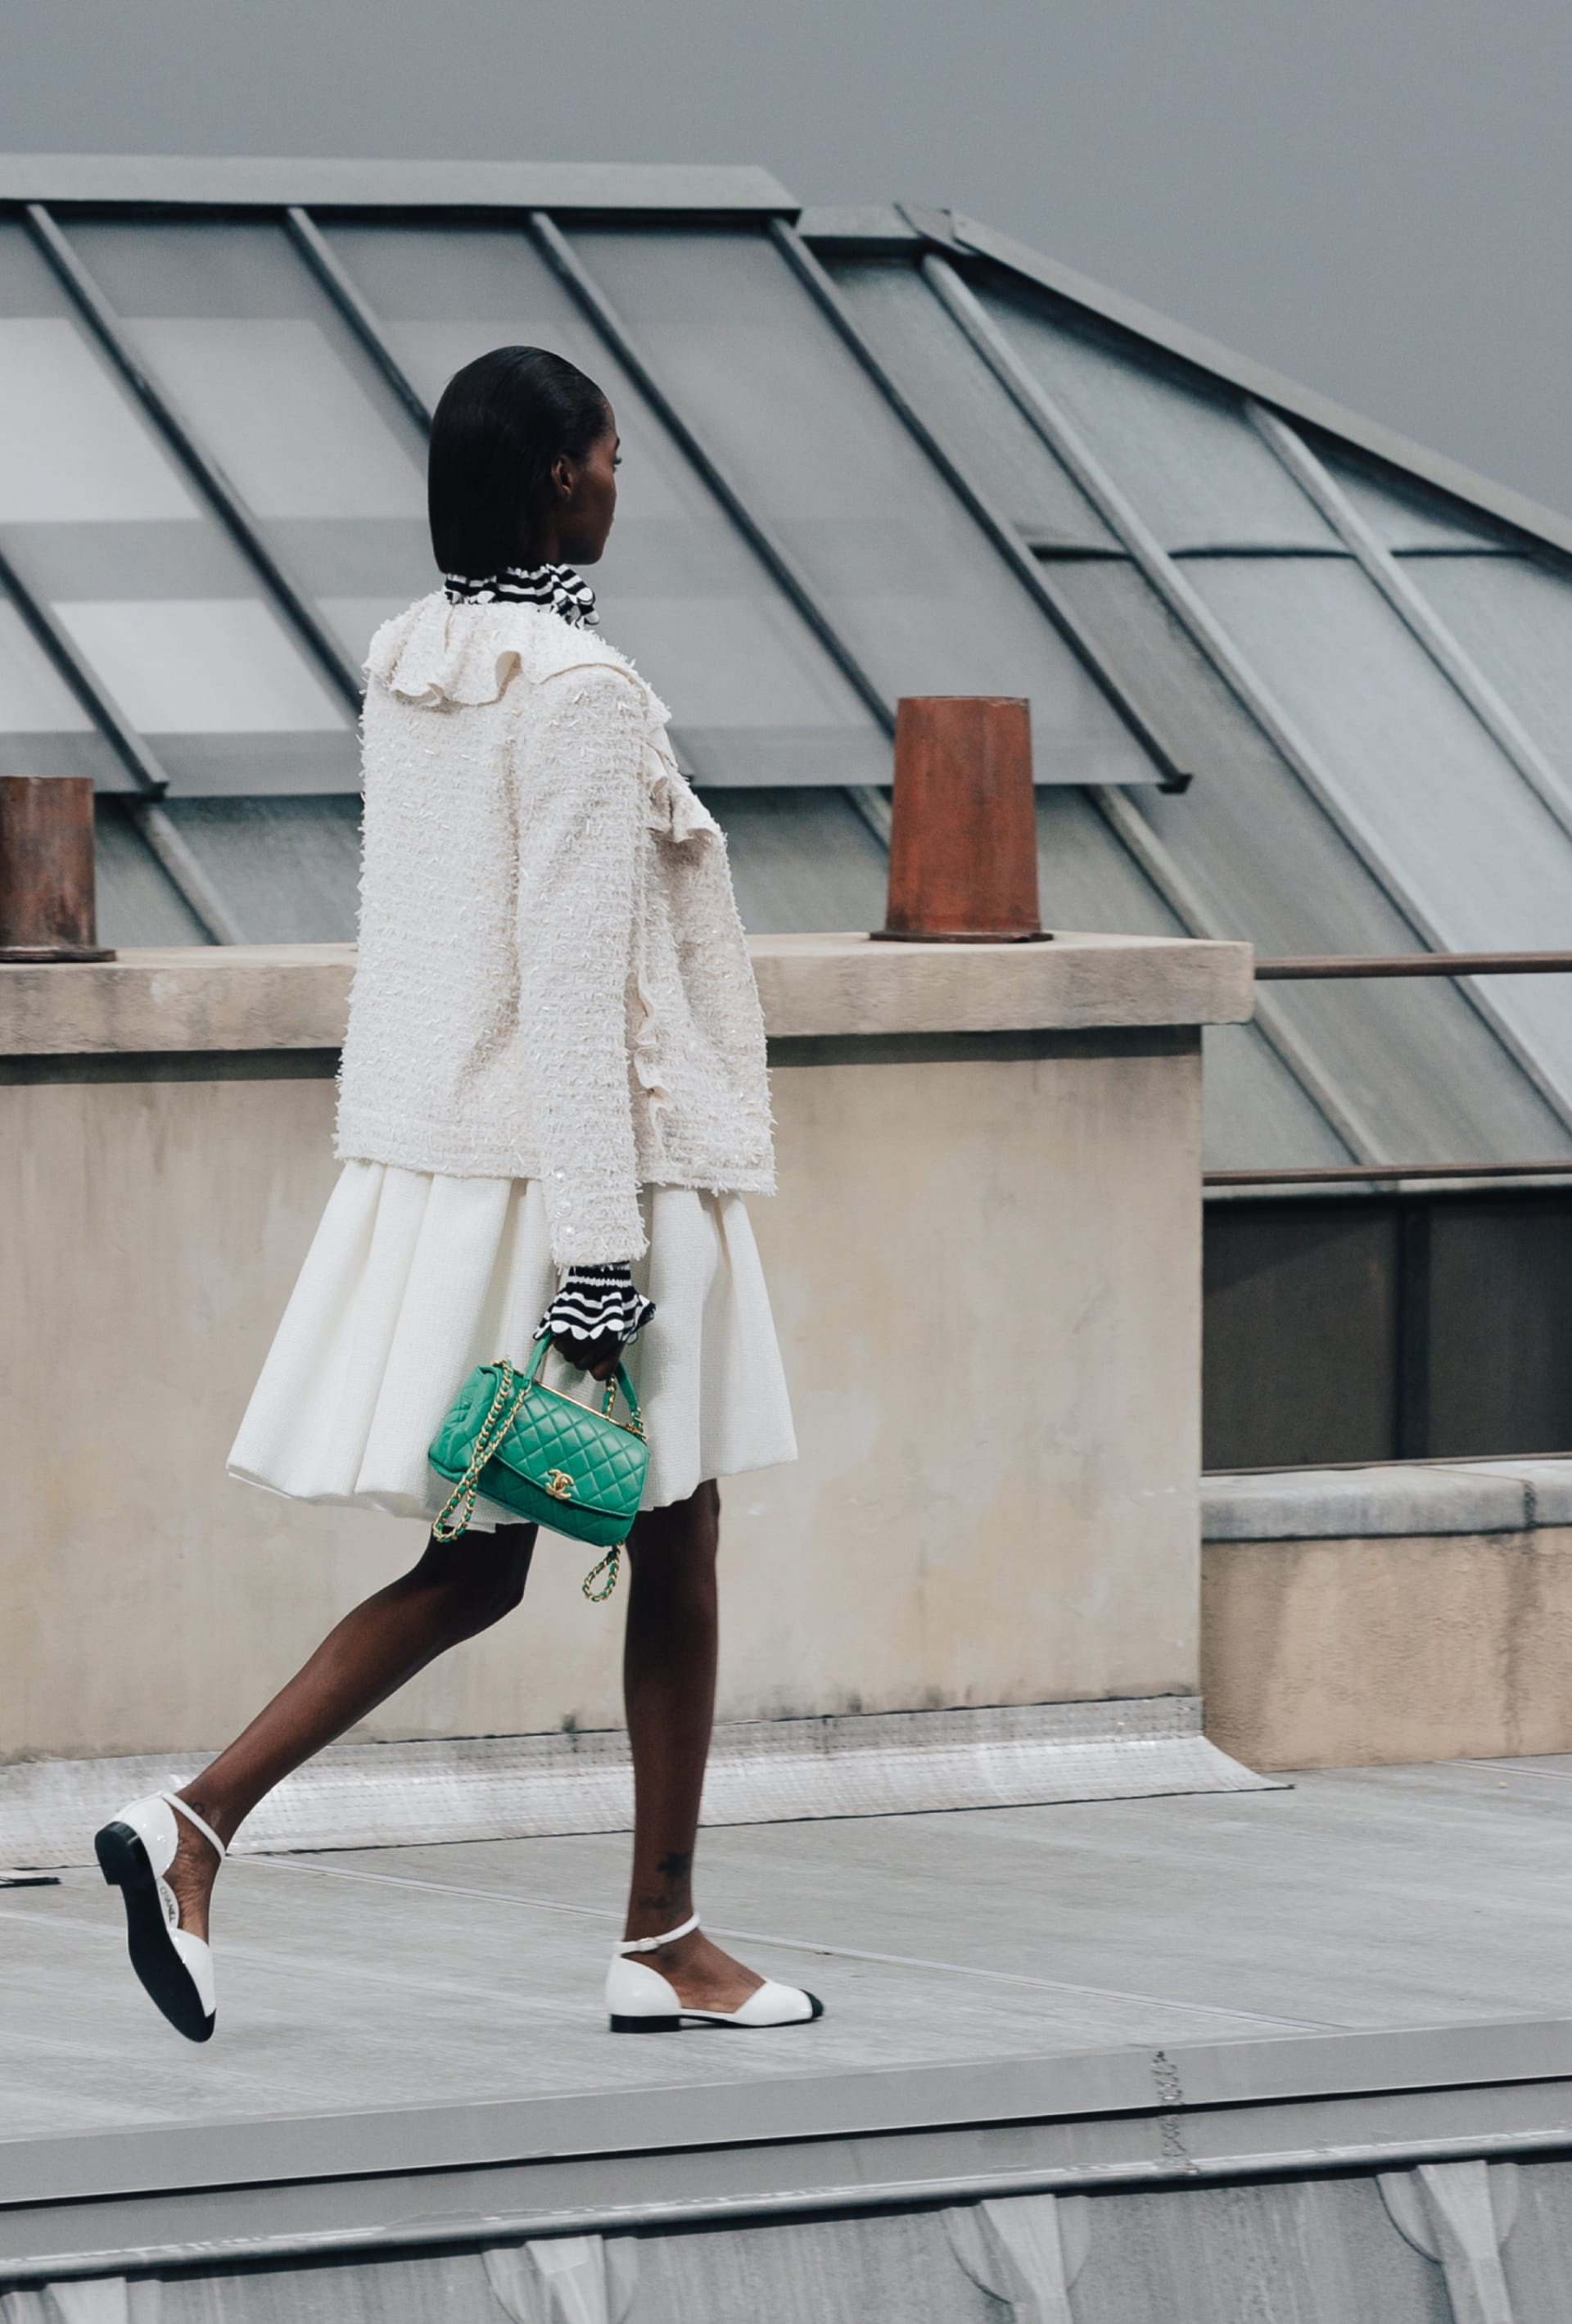 Additional image 2 - Look  23 -  - Spring-Summer 2020